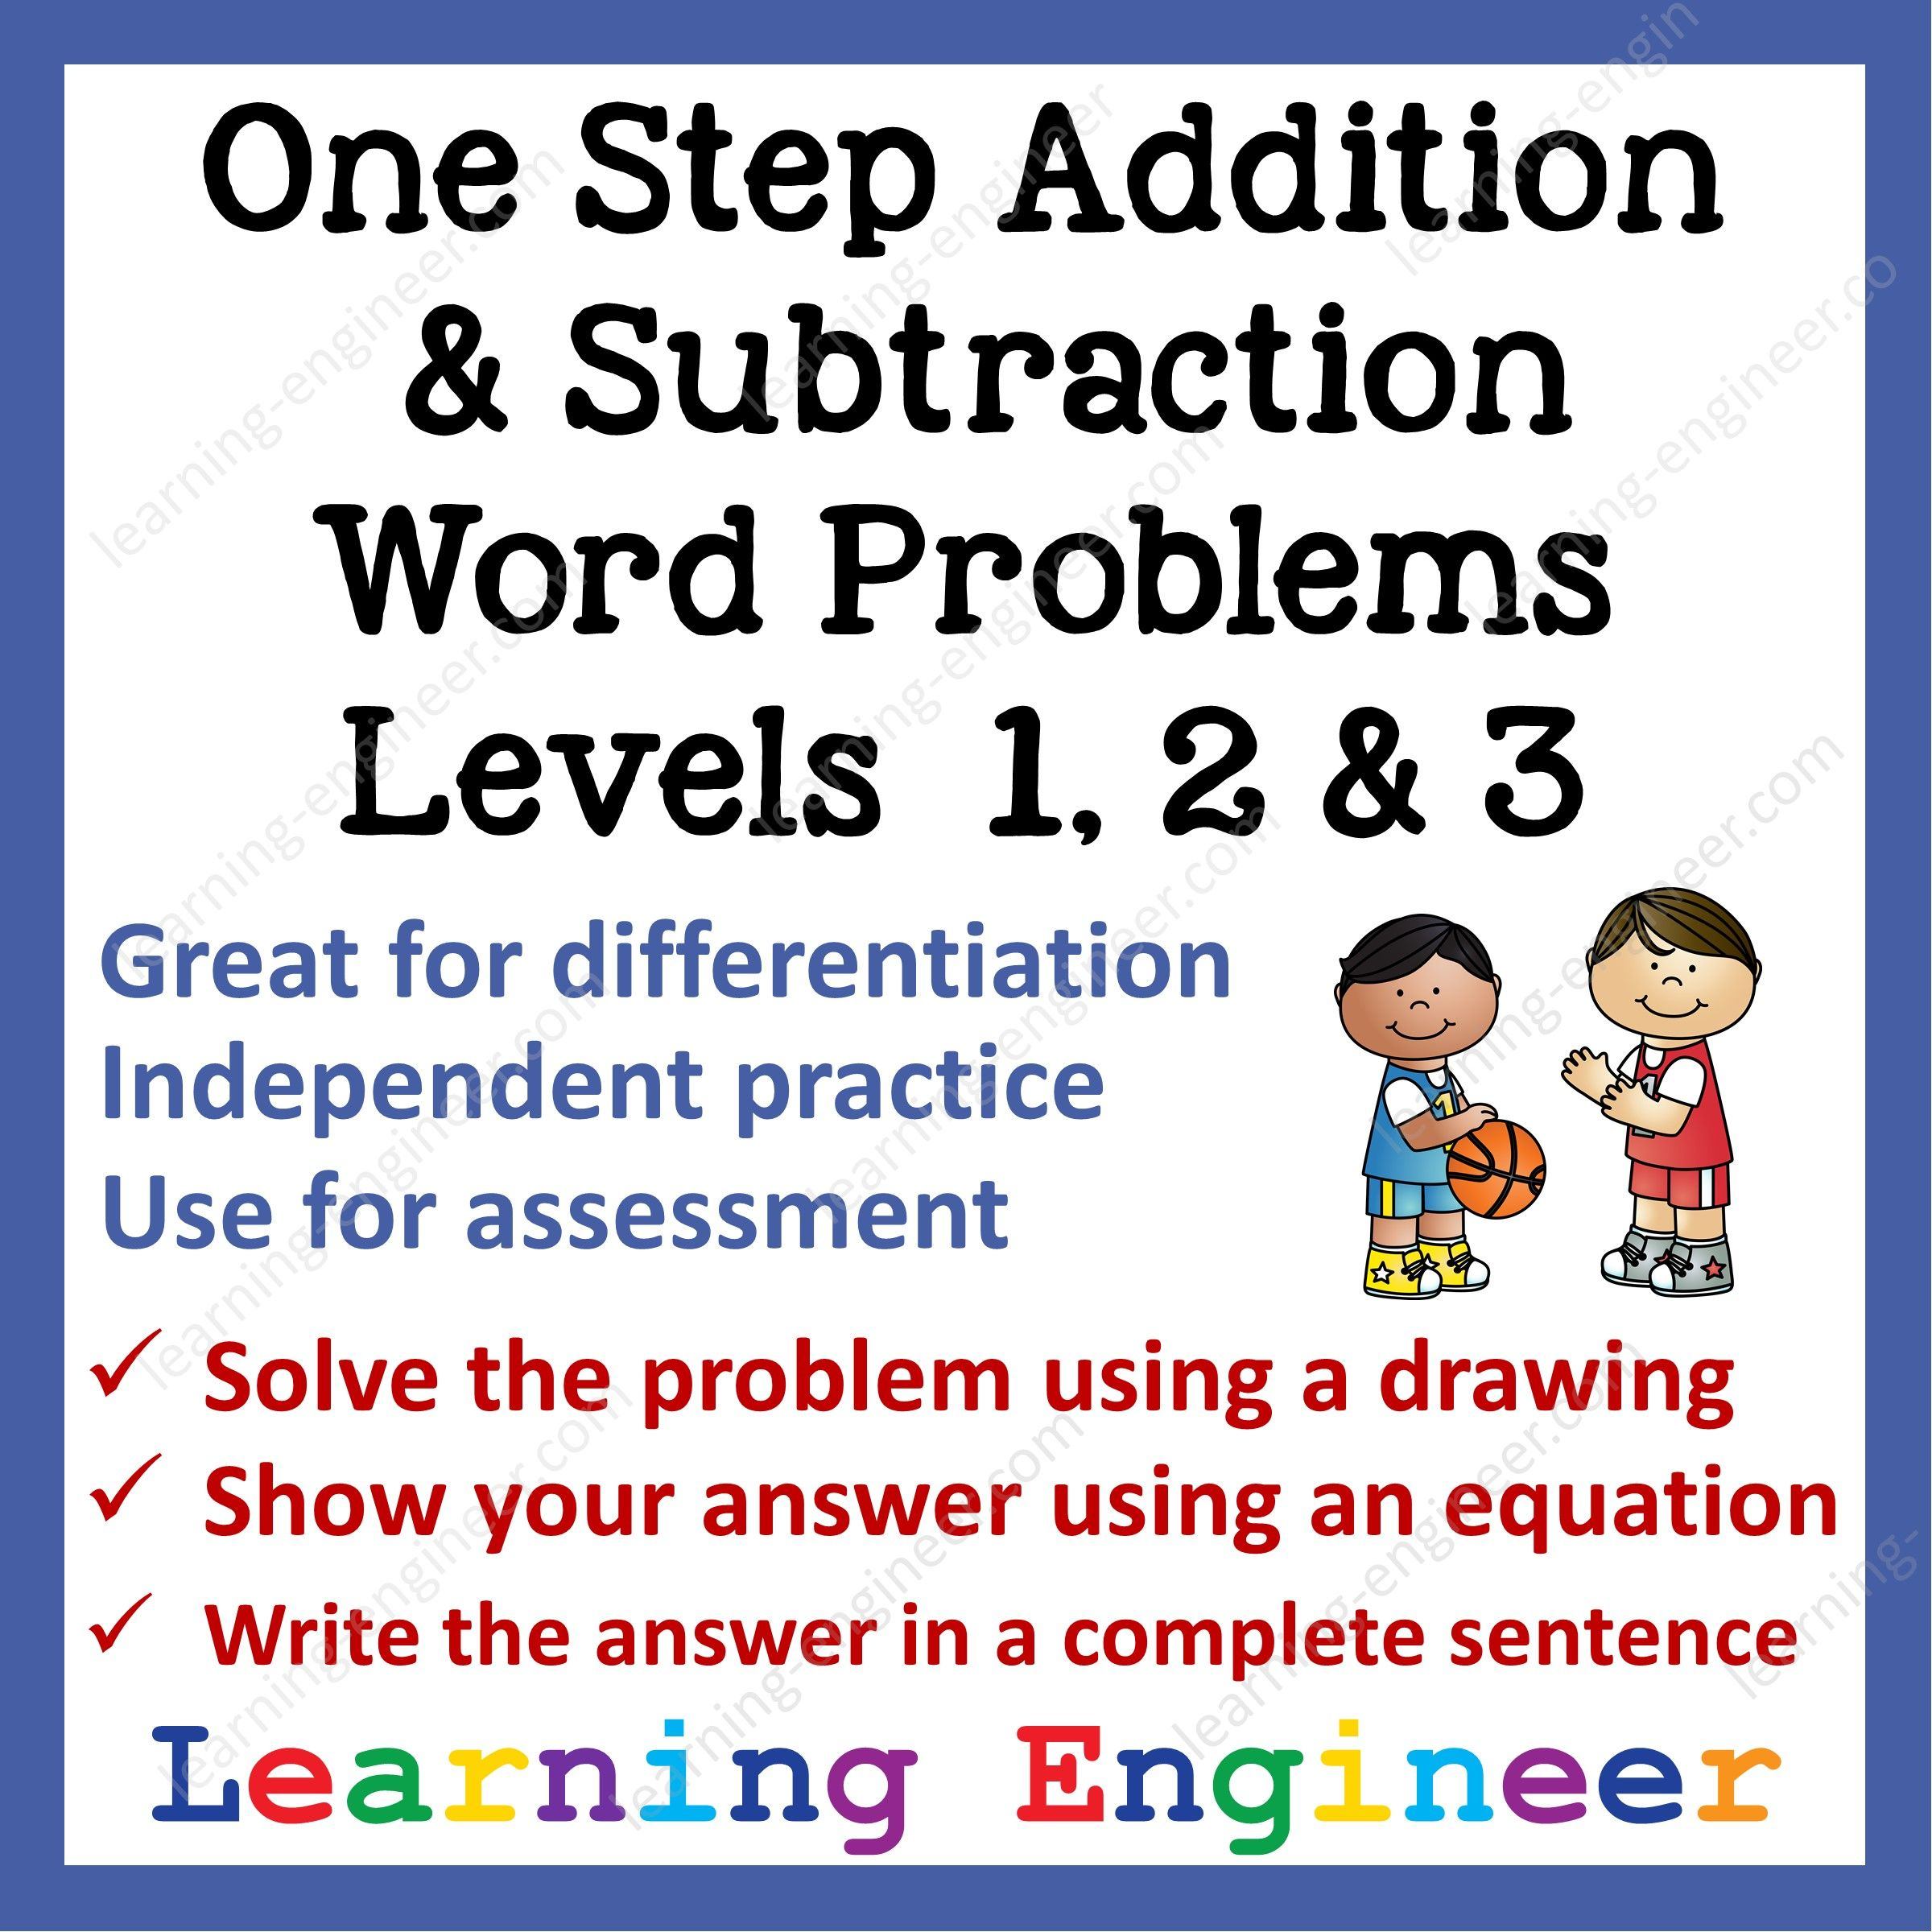 One Step Addition Word Problems Amp Subtraction Word